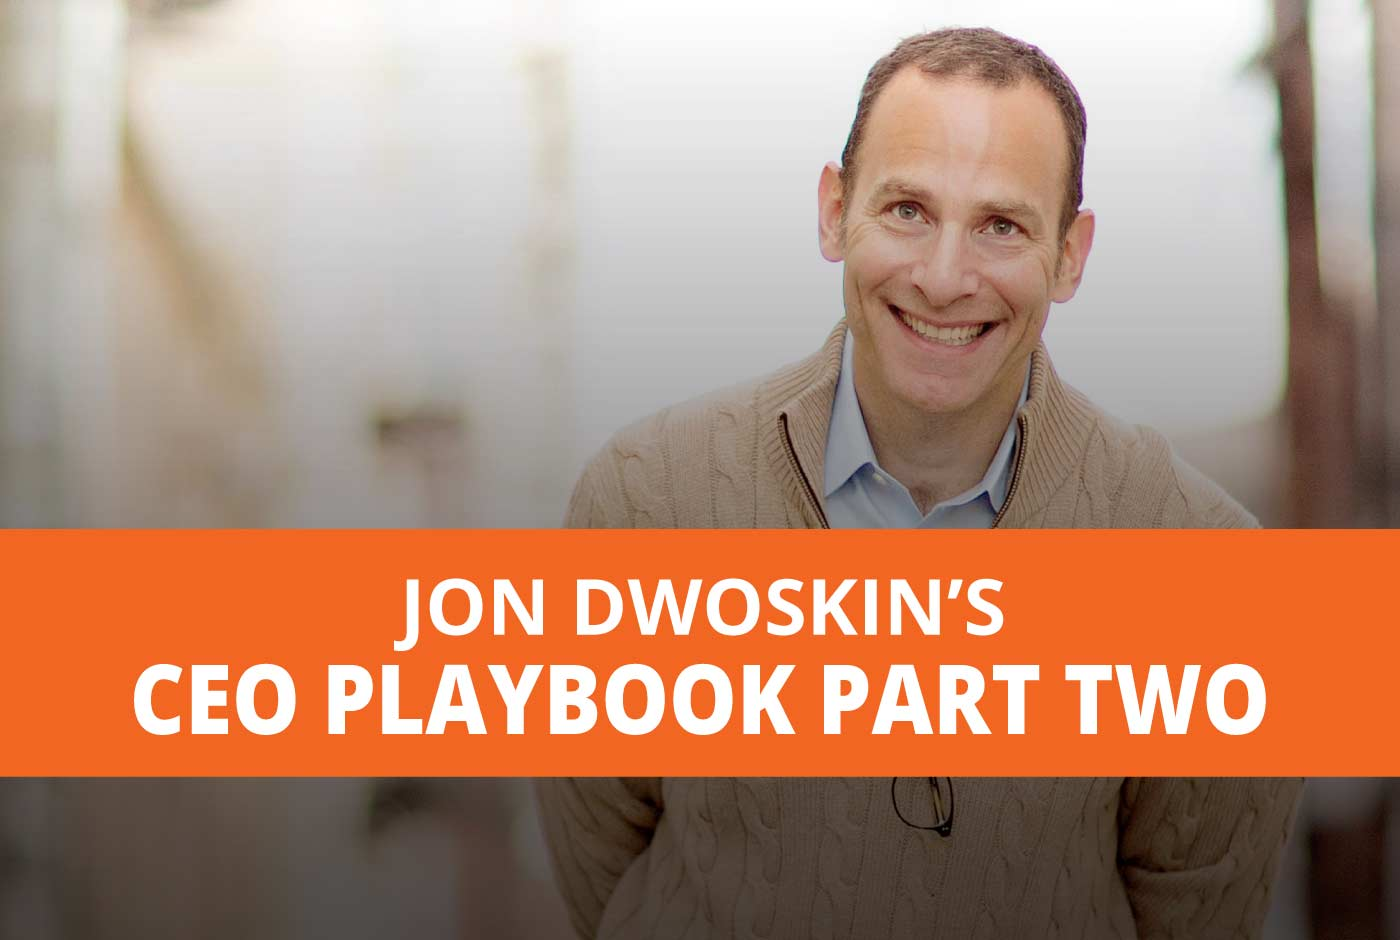 Jon Dwoskin Business Blog: Get Out of Your Comfort Zone and Onto the Fast Track - Jon Dwoskin's CEO Playbook: Part Two